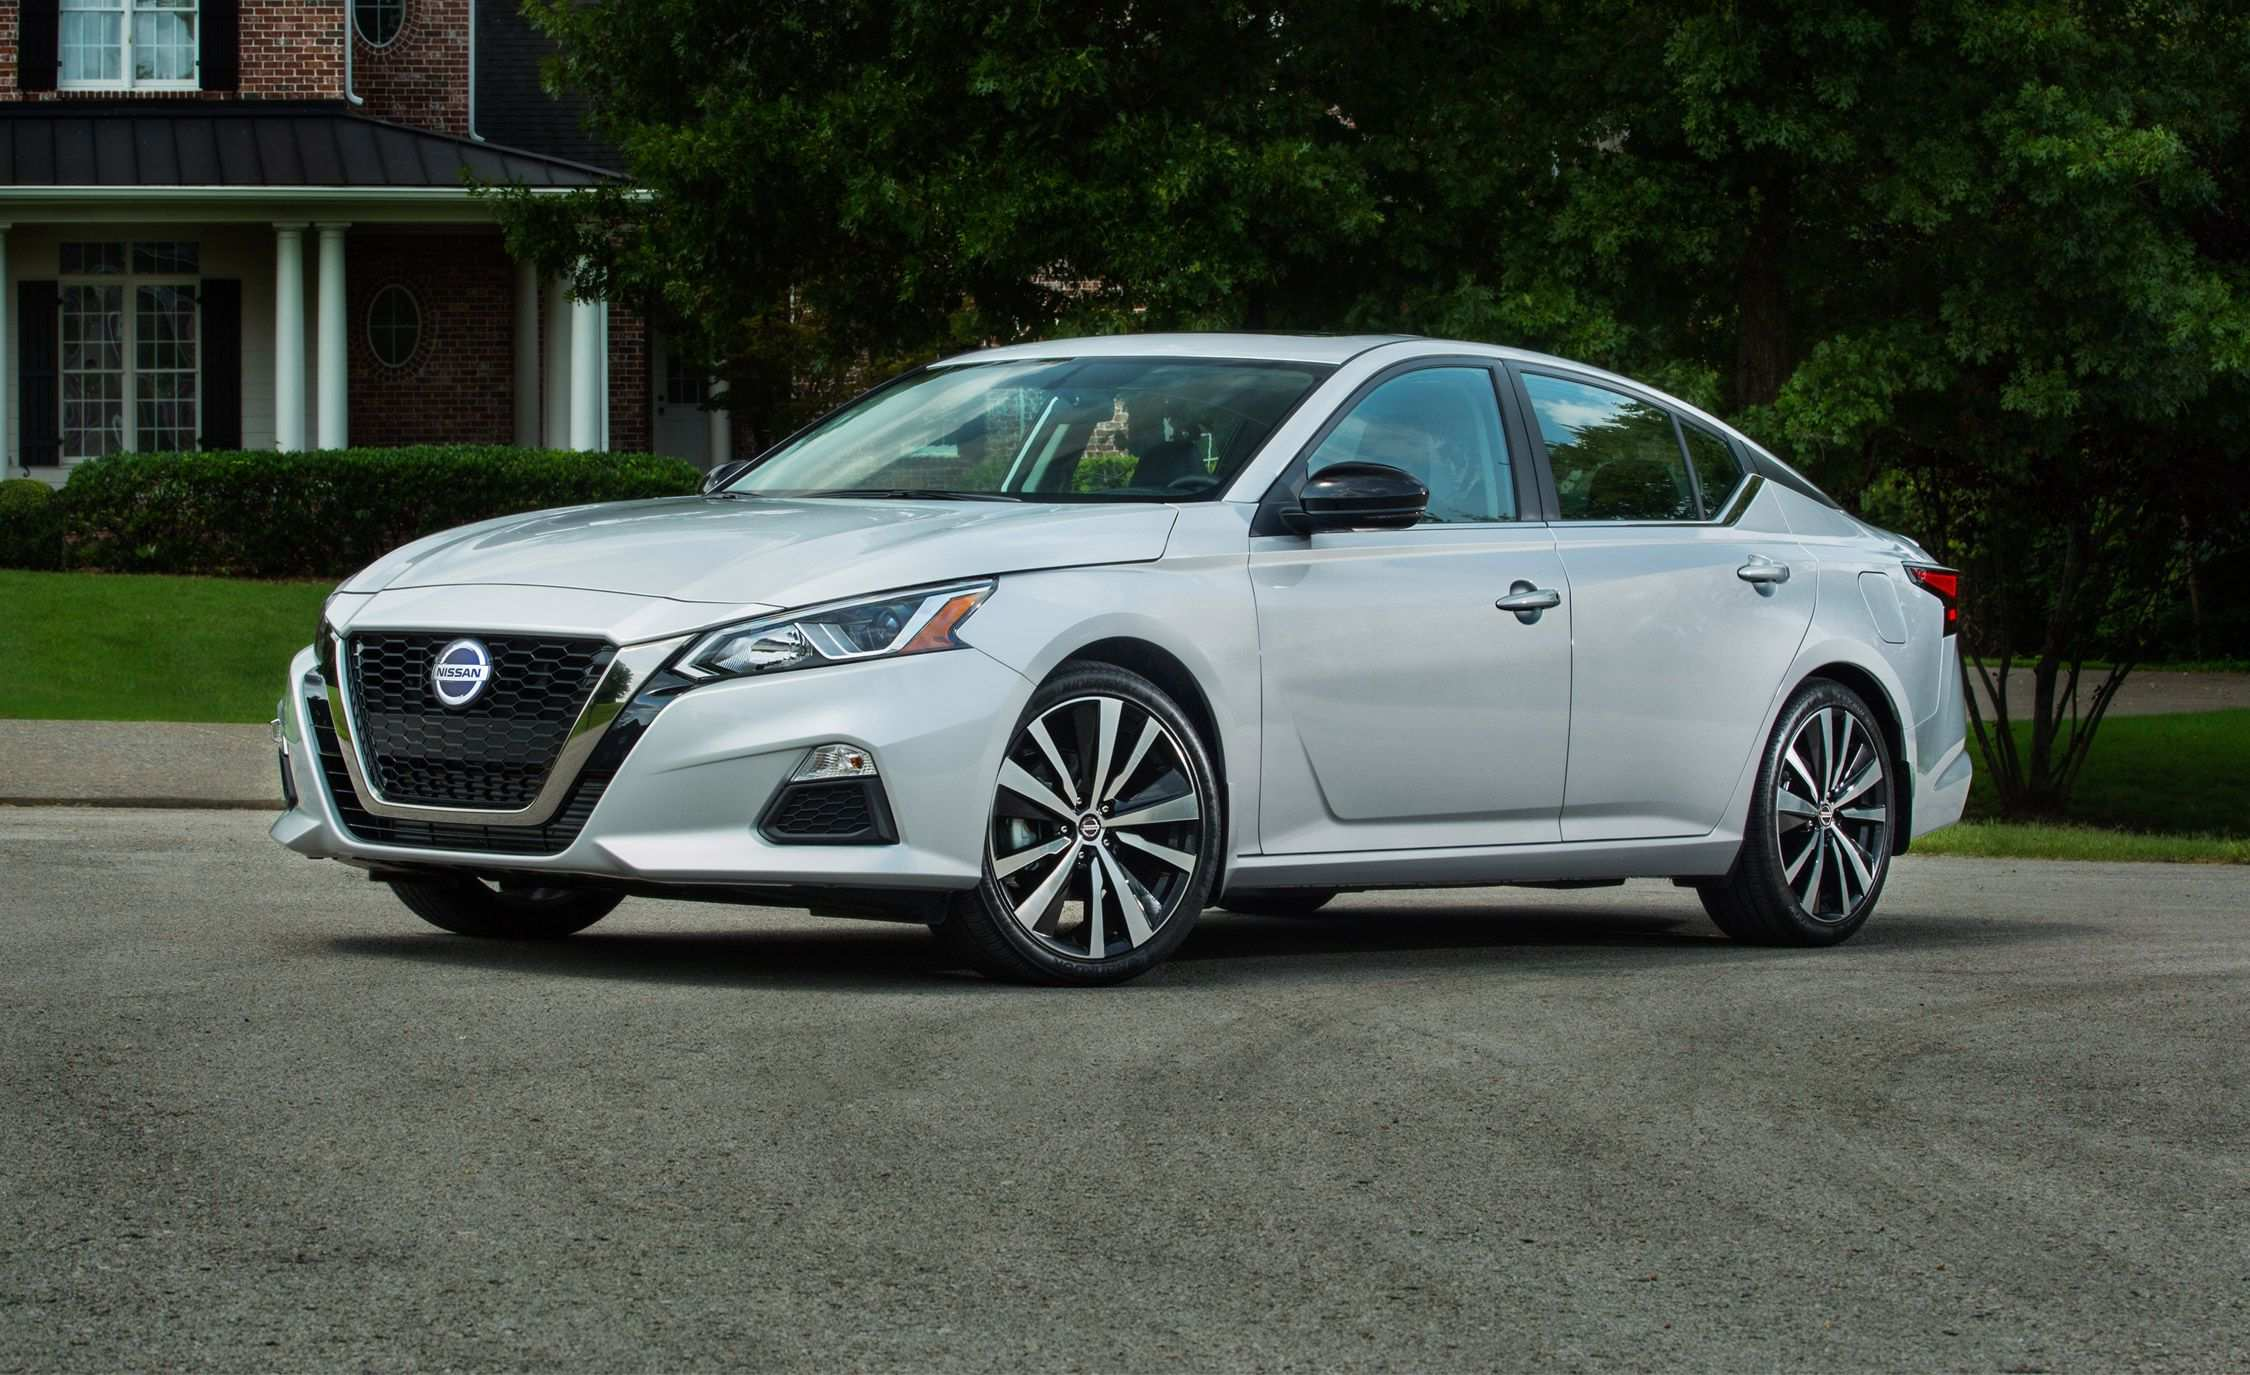 37 New 2019 Nissan Maxima Horsepower Price with 2019 Nissan Maxima Horsepower